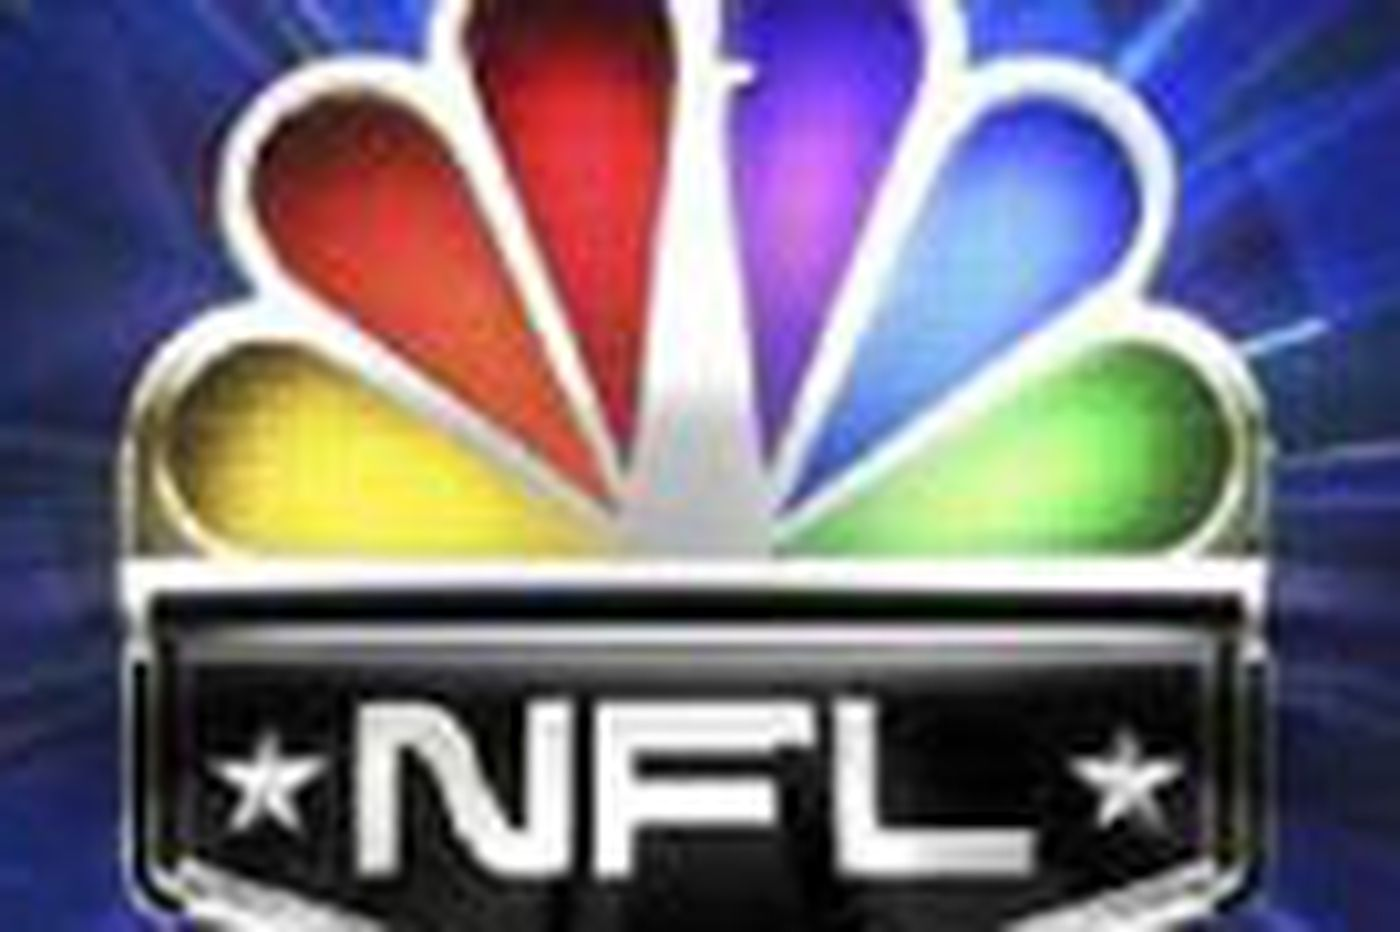 NBC, NFL extend deal 9 years for Sunday night football